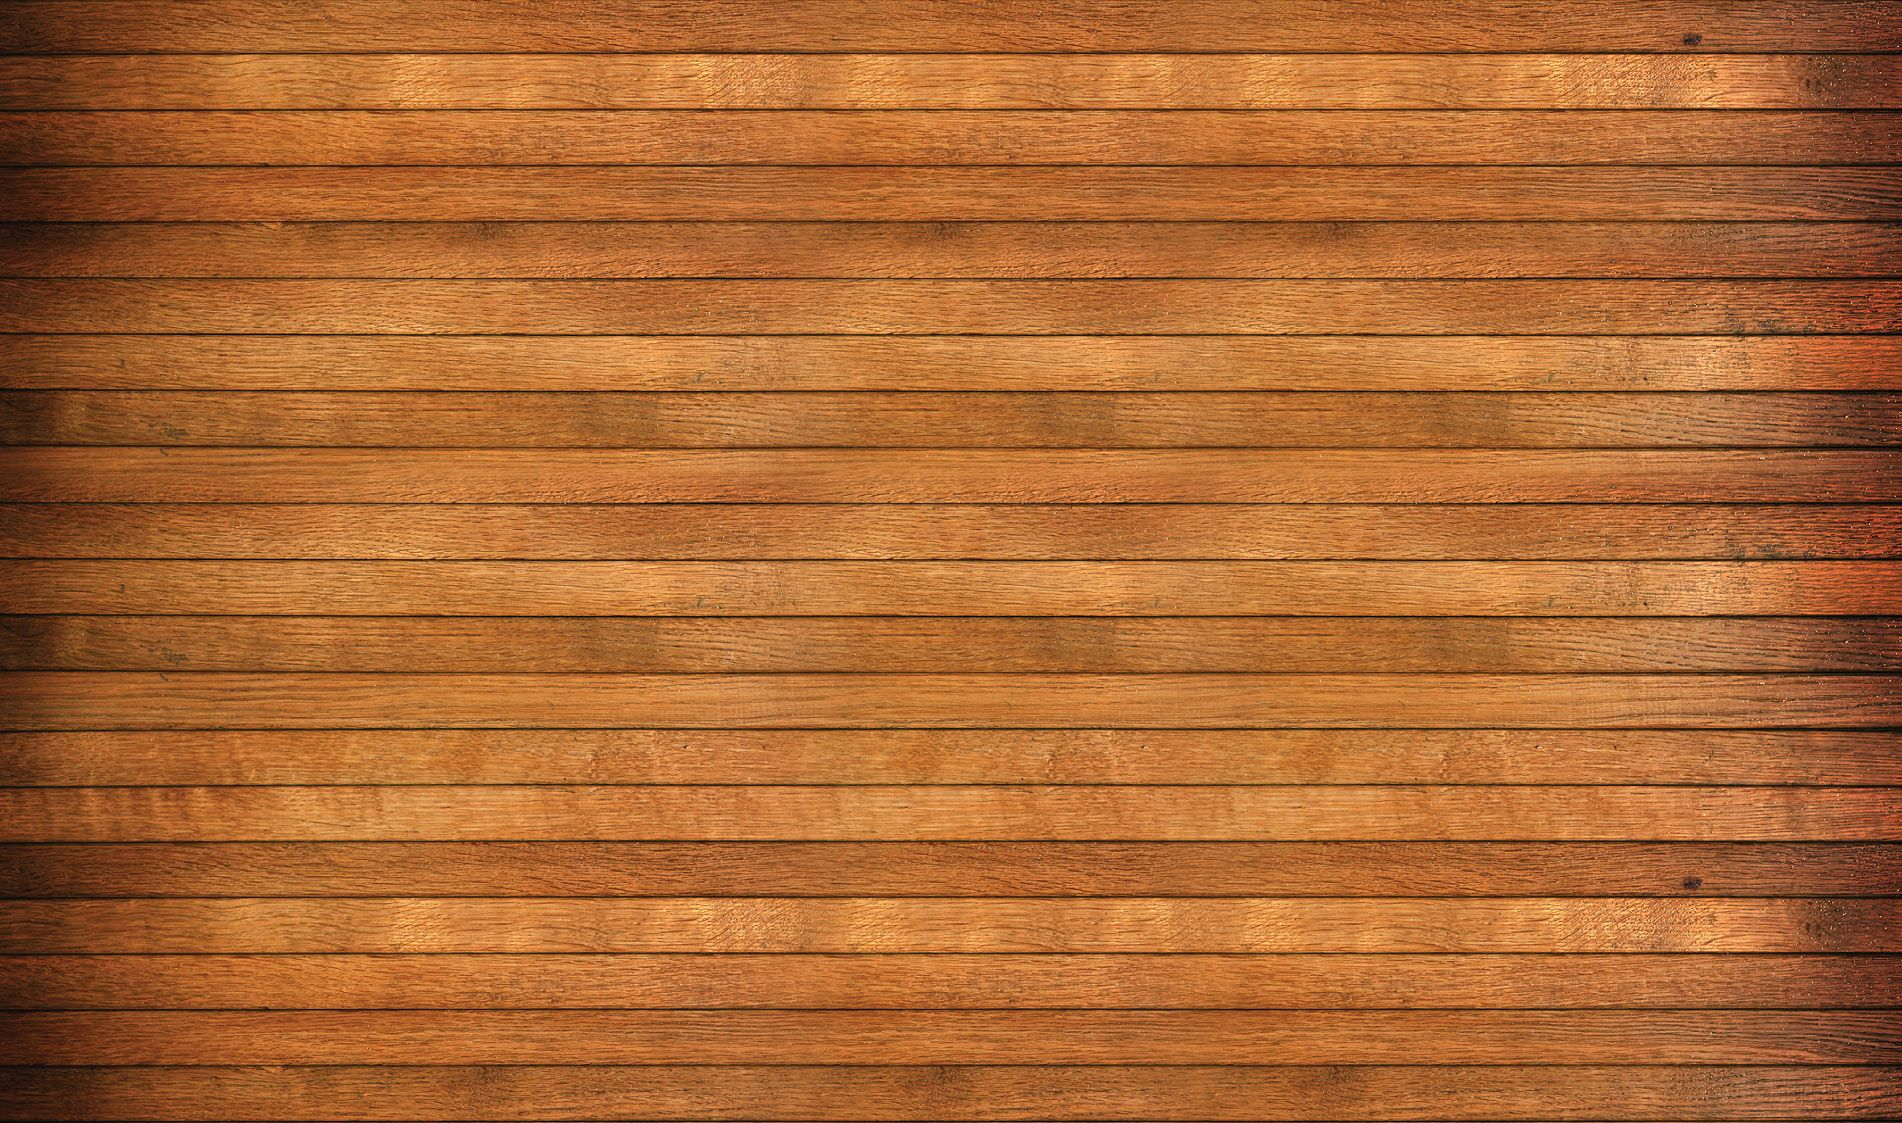 Dinner Table Background wood floors background - google search | tiny house | pinterest